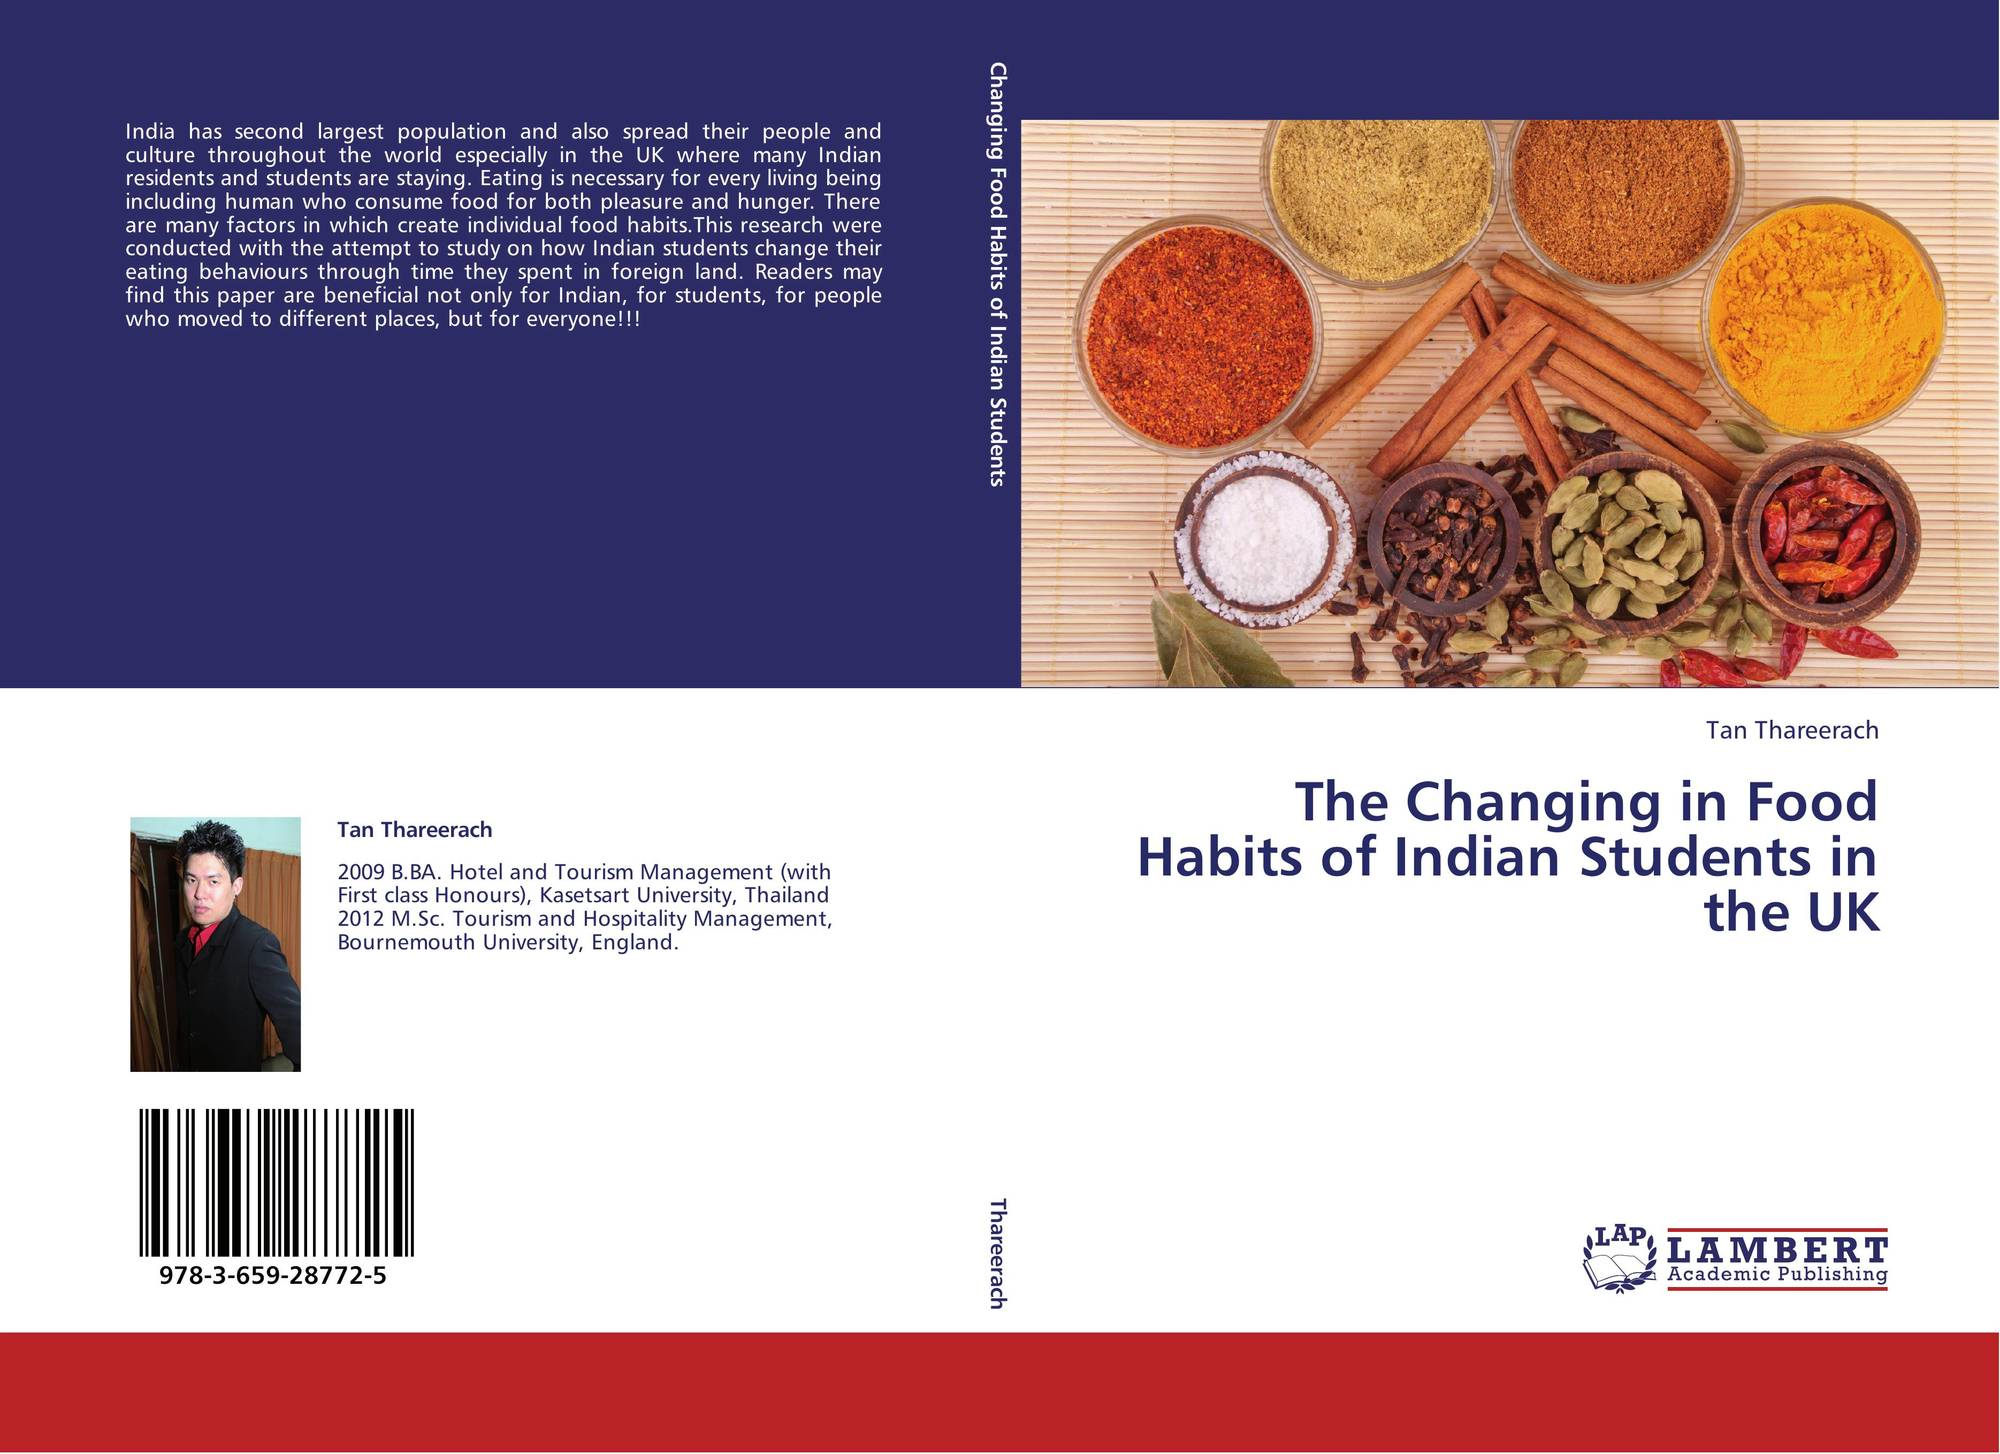 changes in food eating habits of indians The term eating habits (or food habits) refers to why and how people eat, which foods they eat, and with whom they eat, as well as the ways people obtain, store, use, and discard food individual, social, cultural, religious, economic, environmental, and political factors all influence people's eating habits.